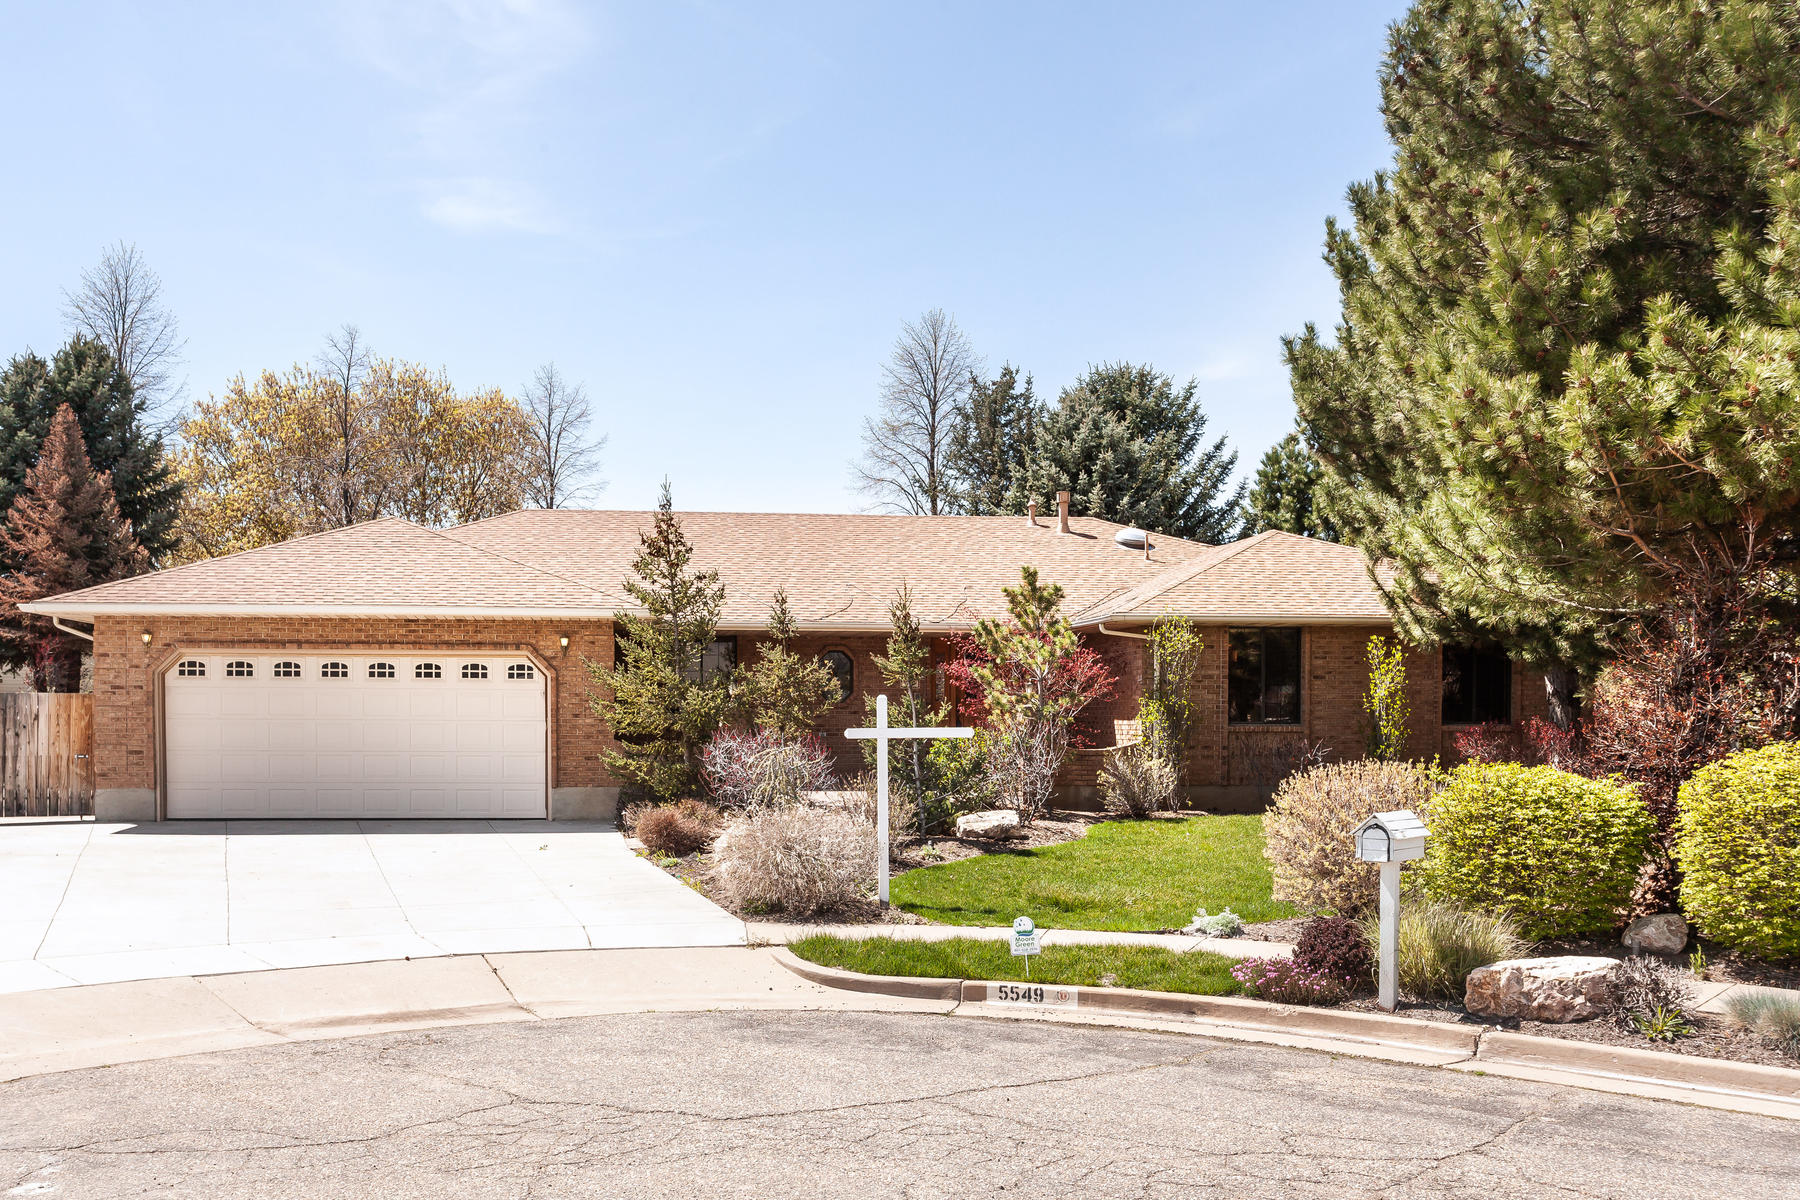 Single Family Homes for Active at Generously Spacious Home in a Quiet Cul-de-sac 5549 South 400 West Washington Terrace, Utah 84405 United States